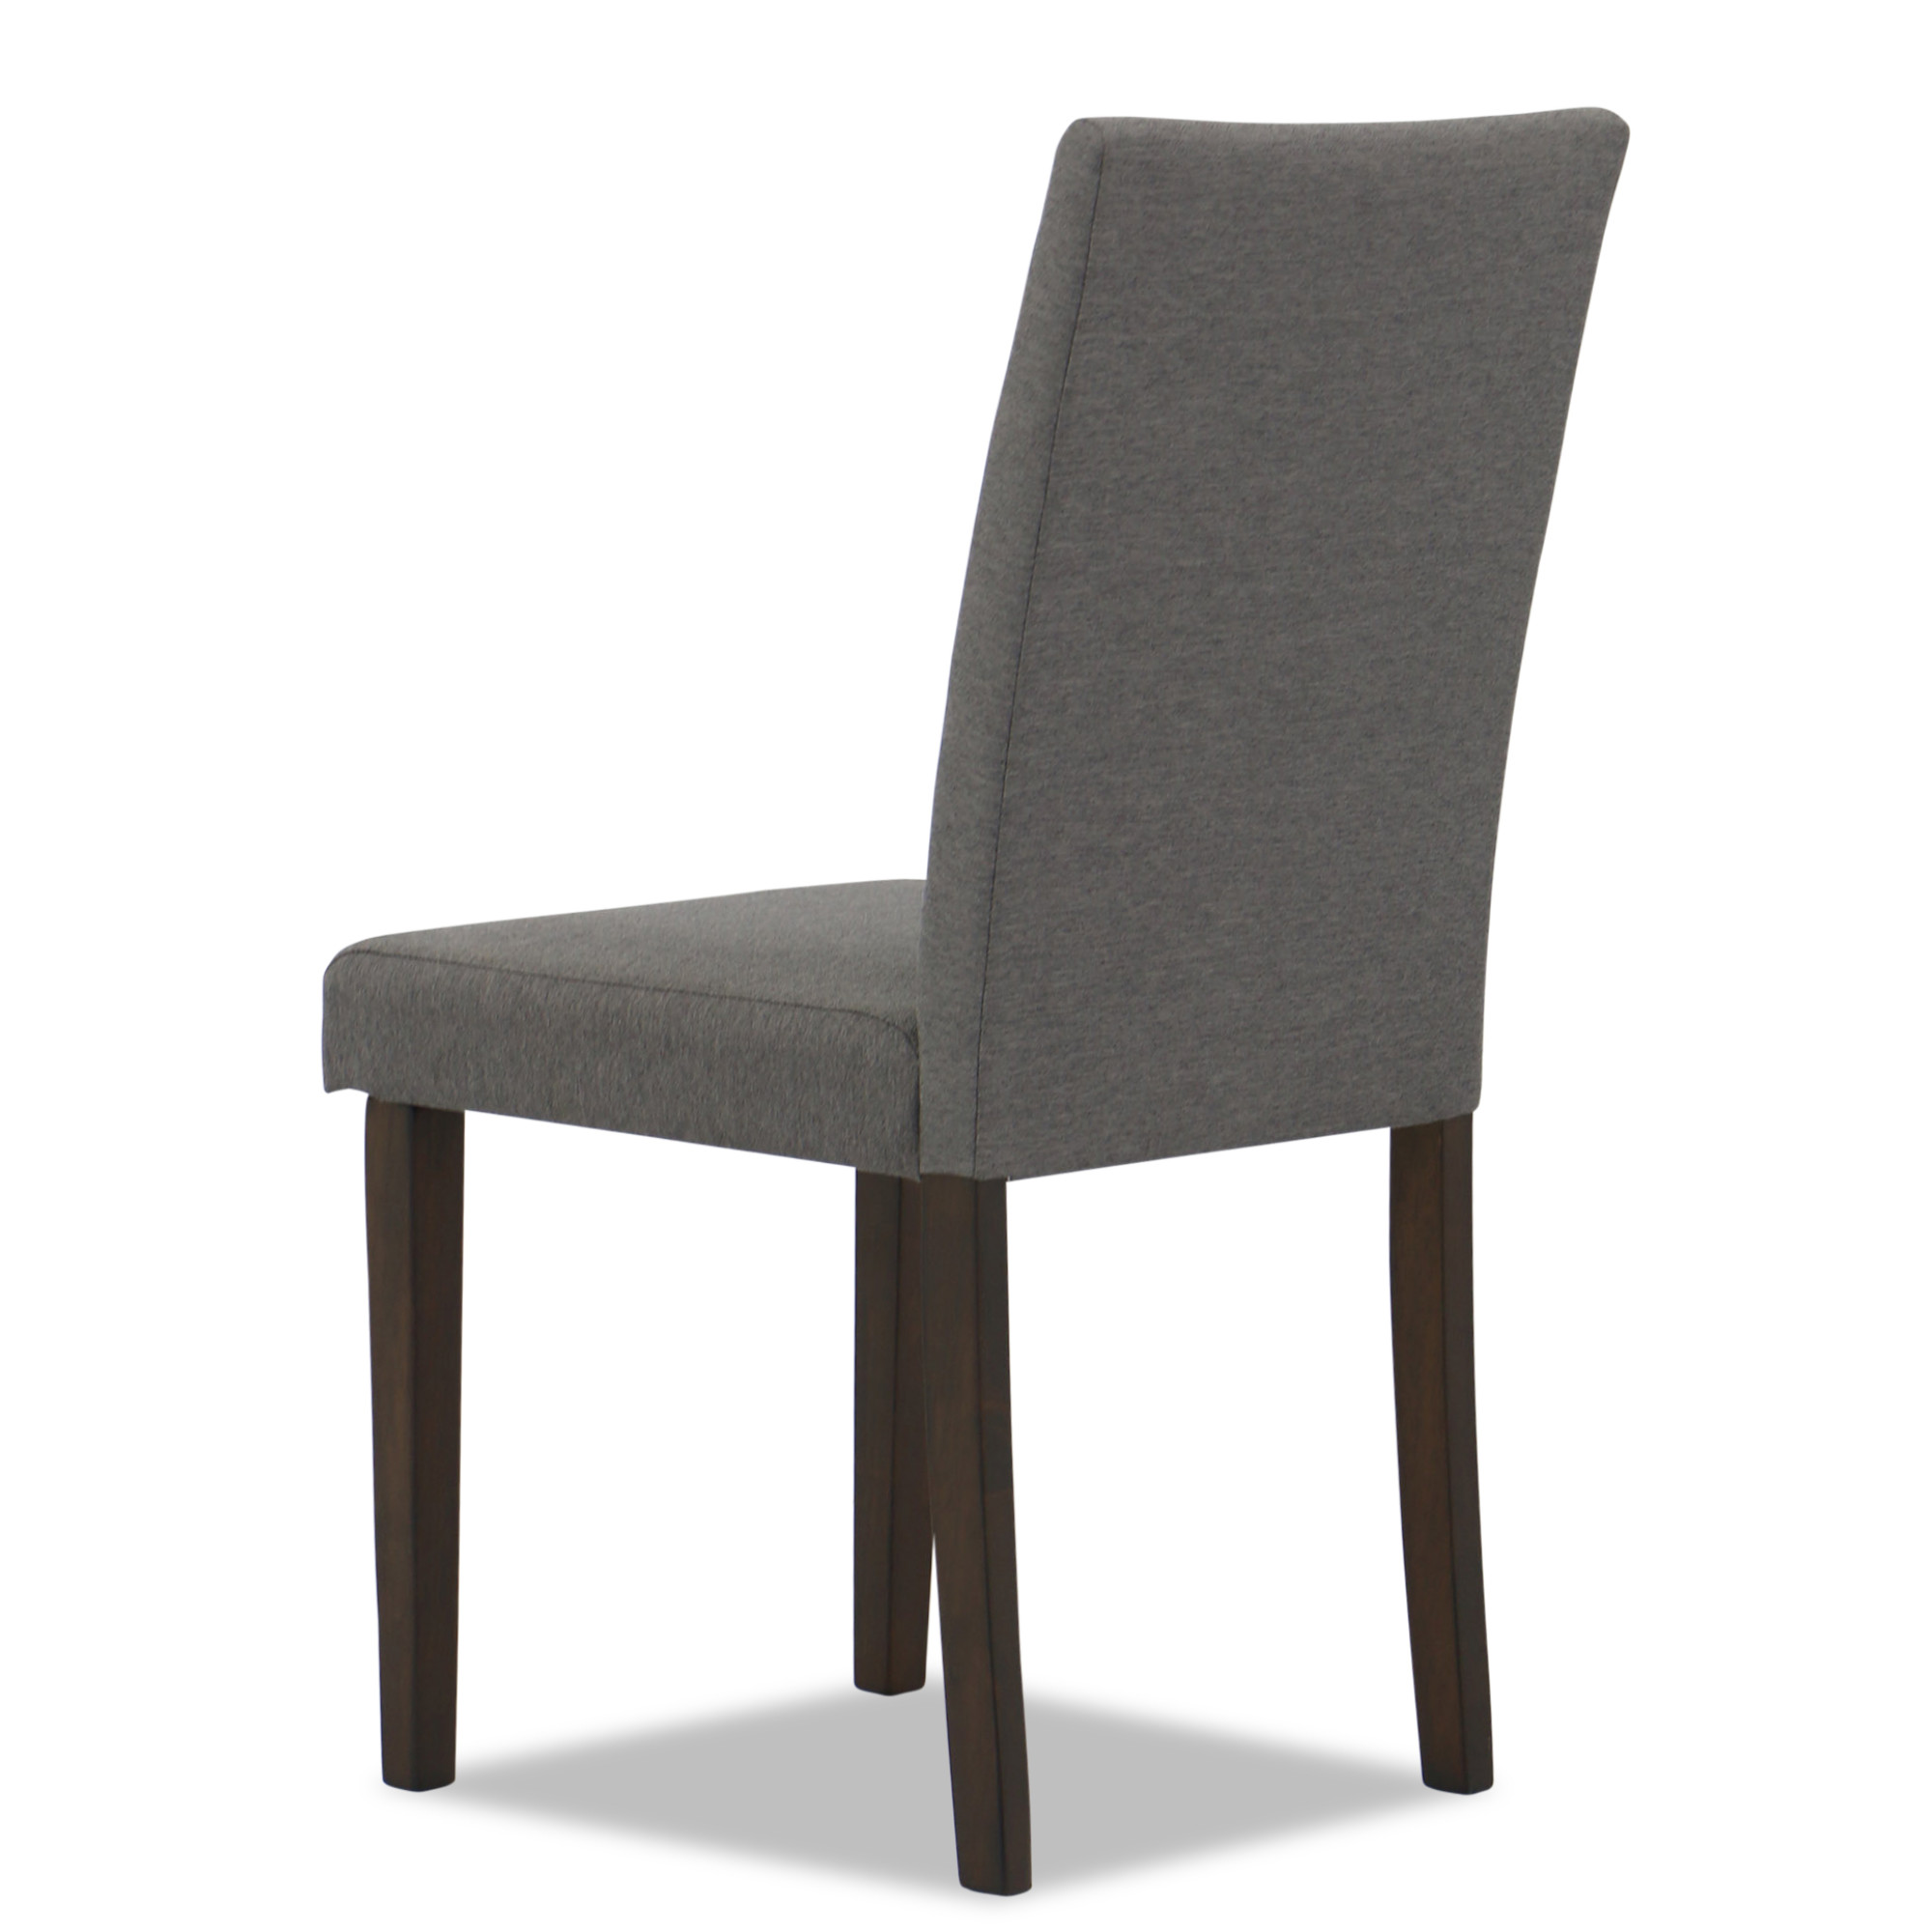 Dining Chairs Libby Dining Chair Wenge Furniture And Home Décor Fortytwo